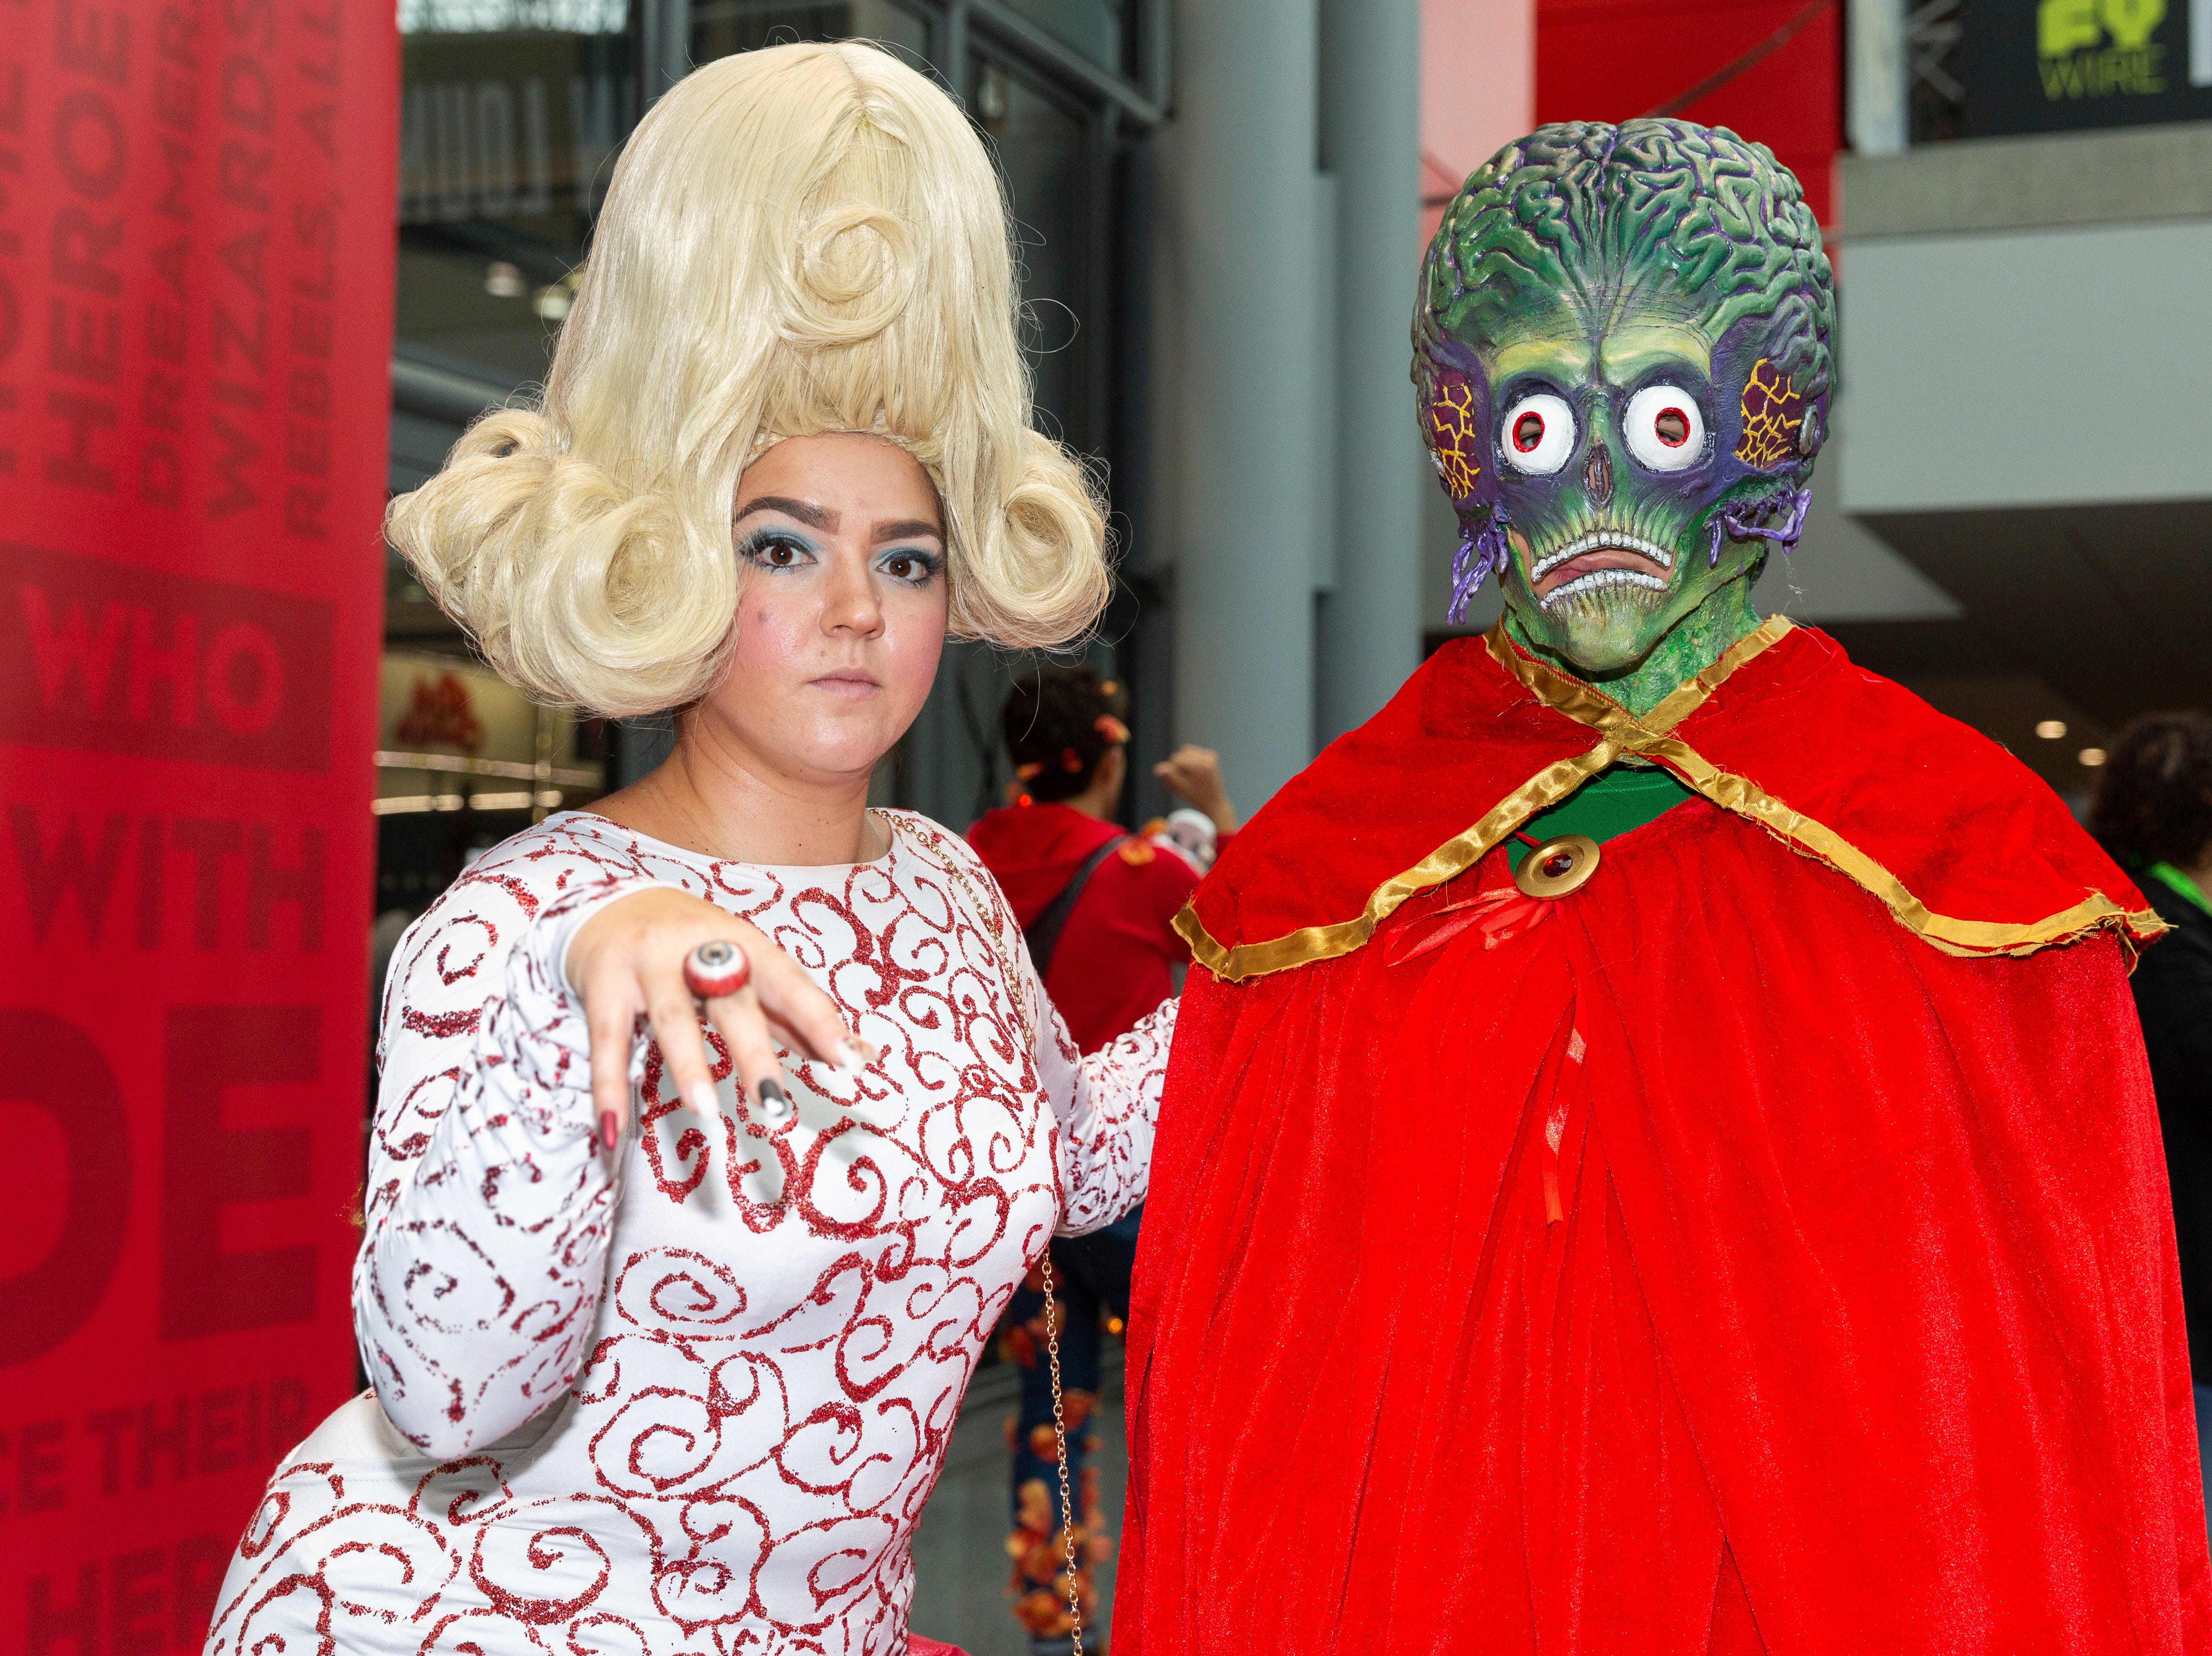 Attendees dressed in costume pose for a photo on the third day of New York Comic Con, Saturday, Oct. 6, 2018. (AP Photo/Steve Luciano)